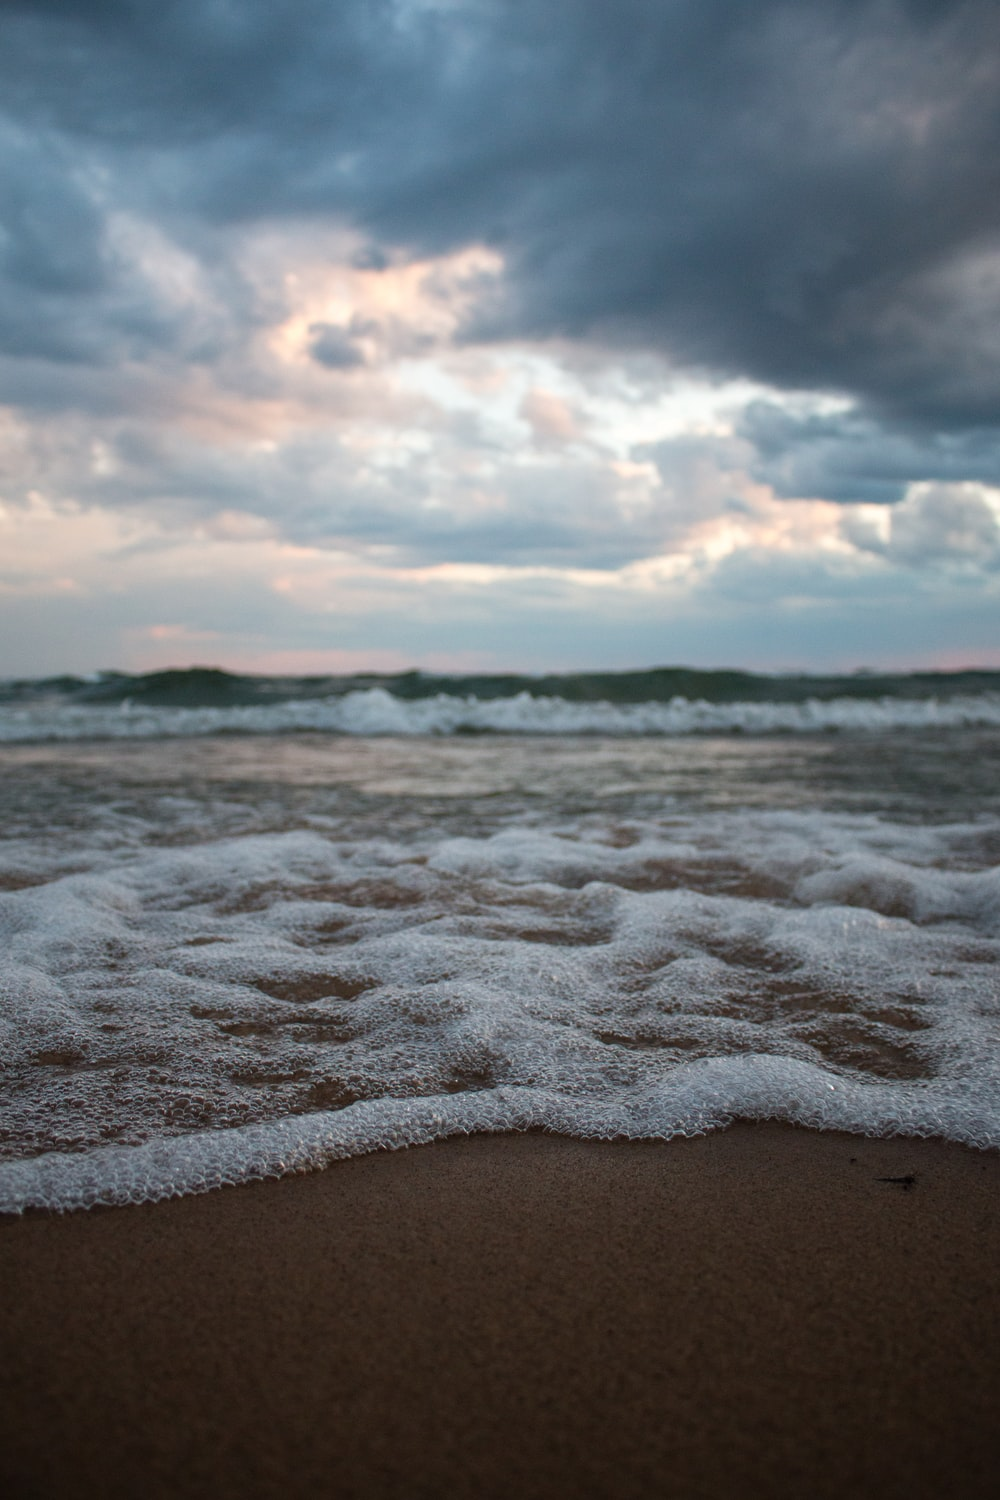 ocean waves crashing on shore under white clouds and blue sky during daytime